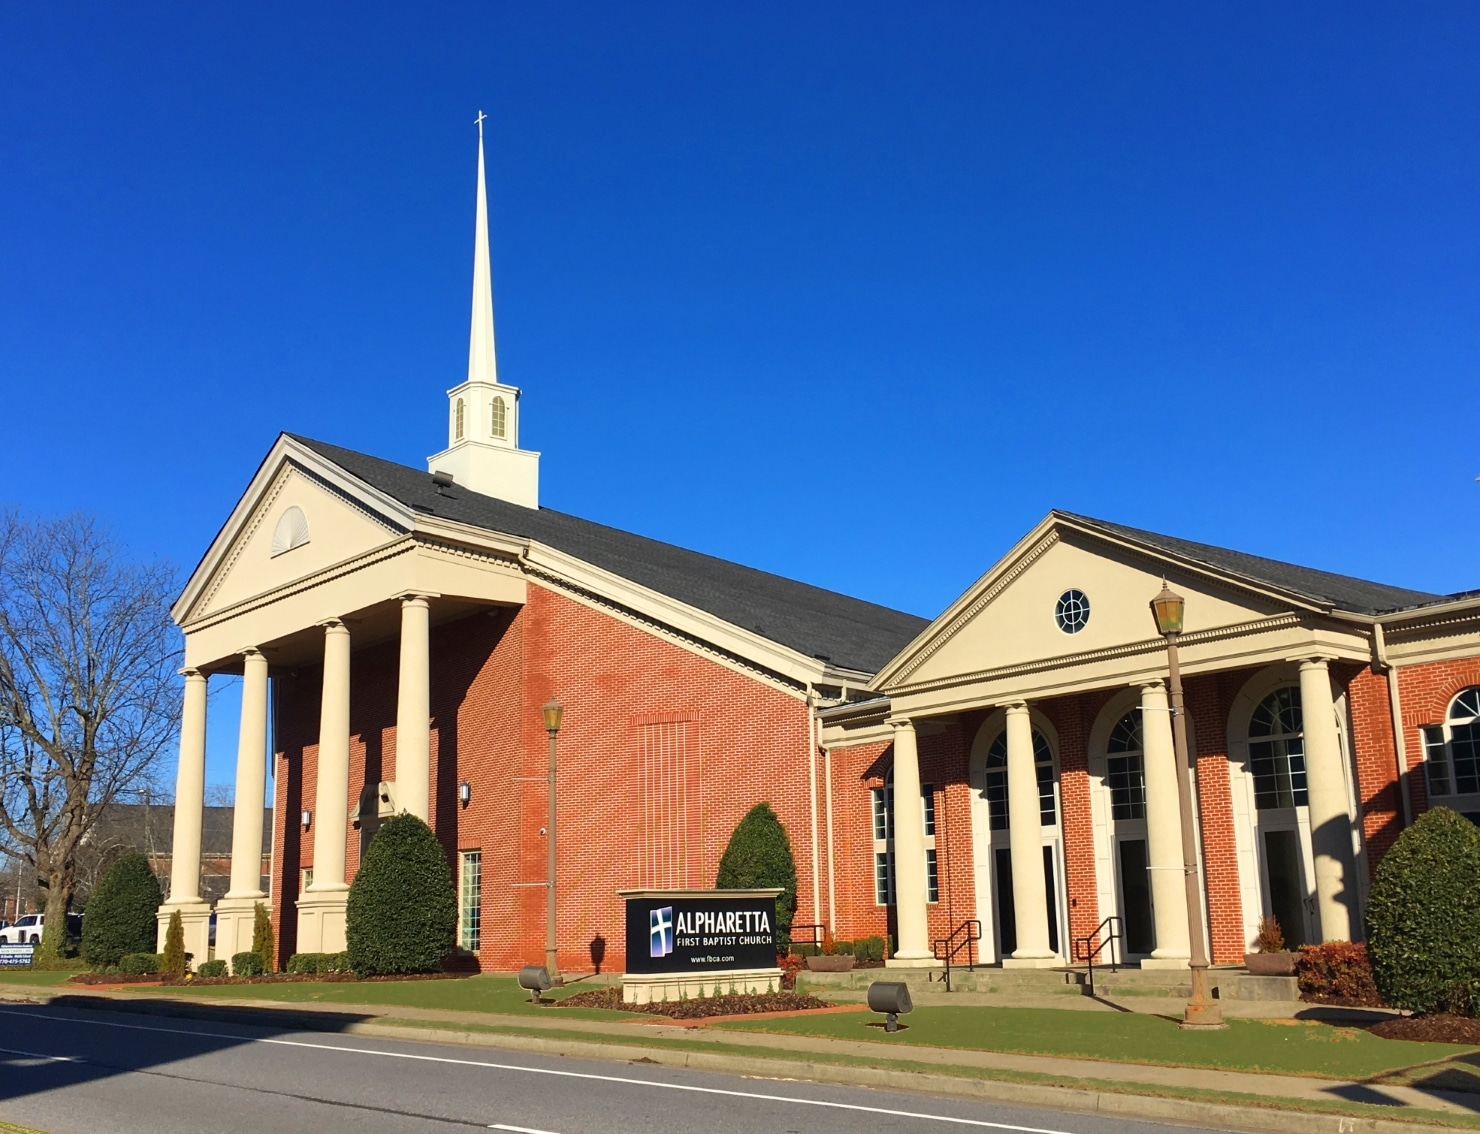 First Baptist Church Alpharetta